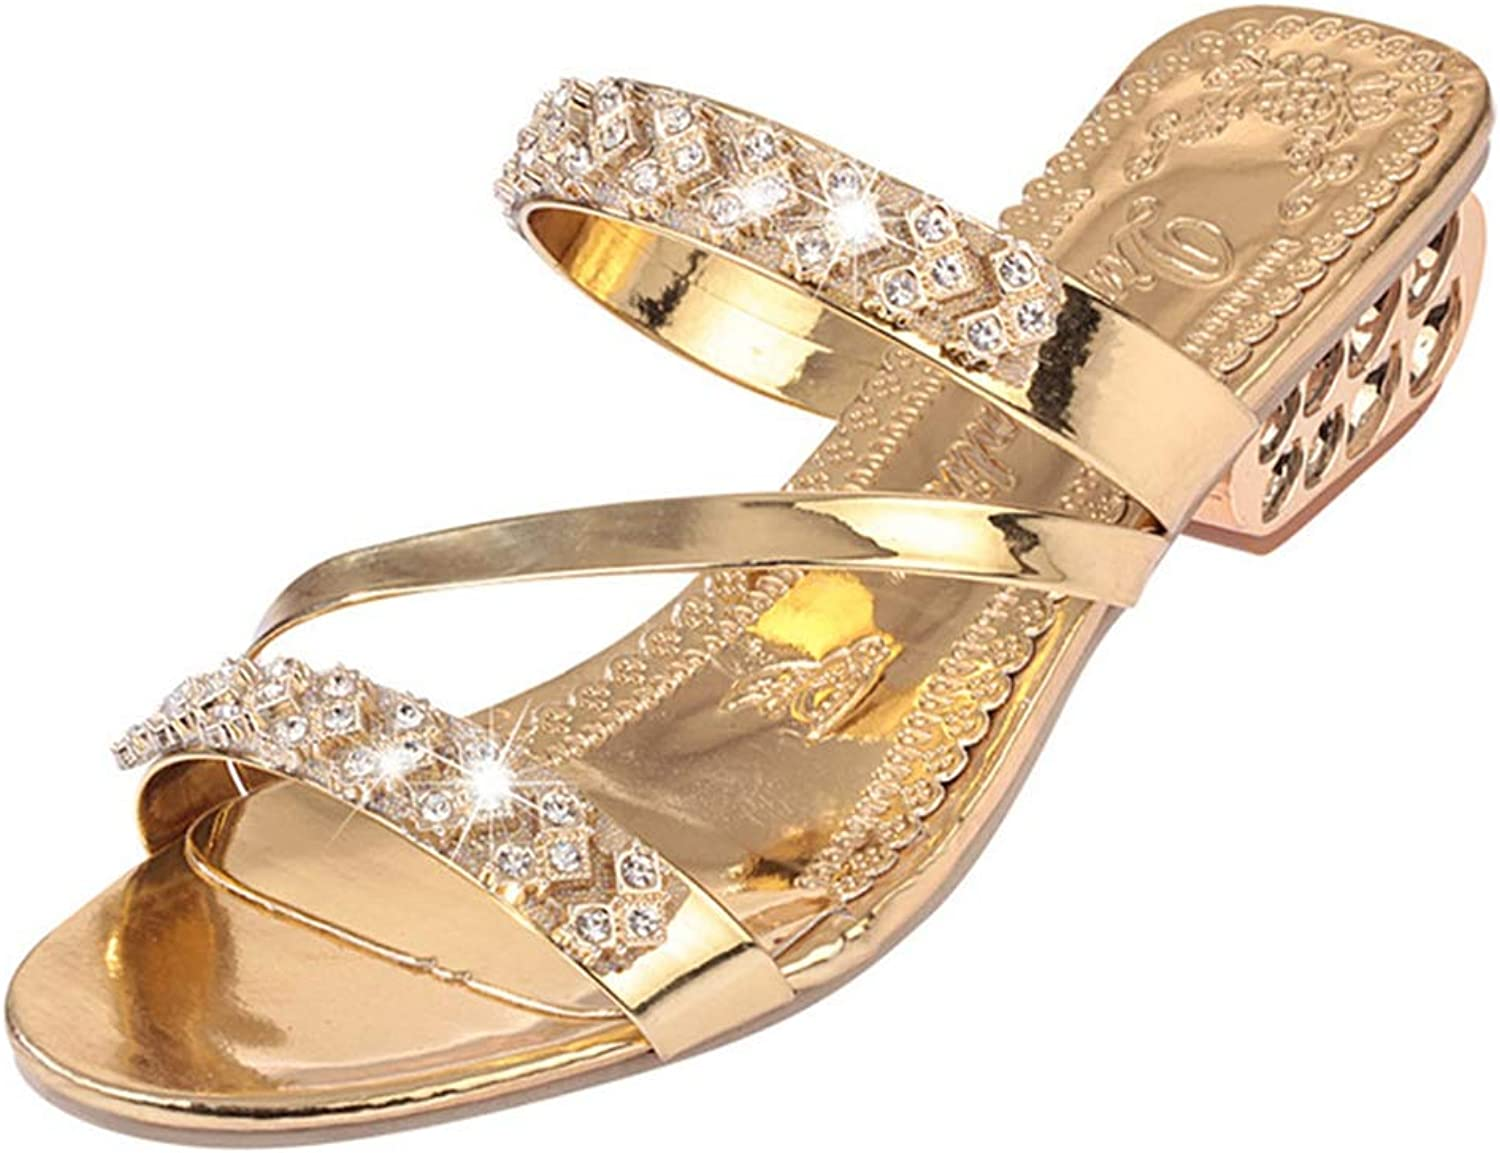 U-MAC Sparkling Rhinestone Rhinestone Low Heel Wedge Platform Sandals for Womens Sexy Open Toe Crystal Slip On Party Dress shoes